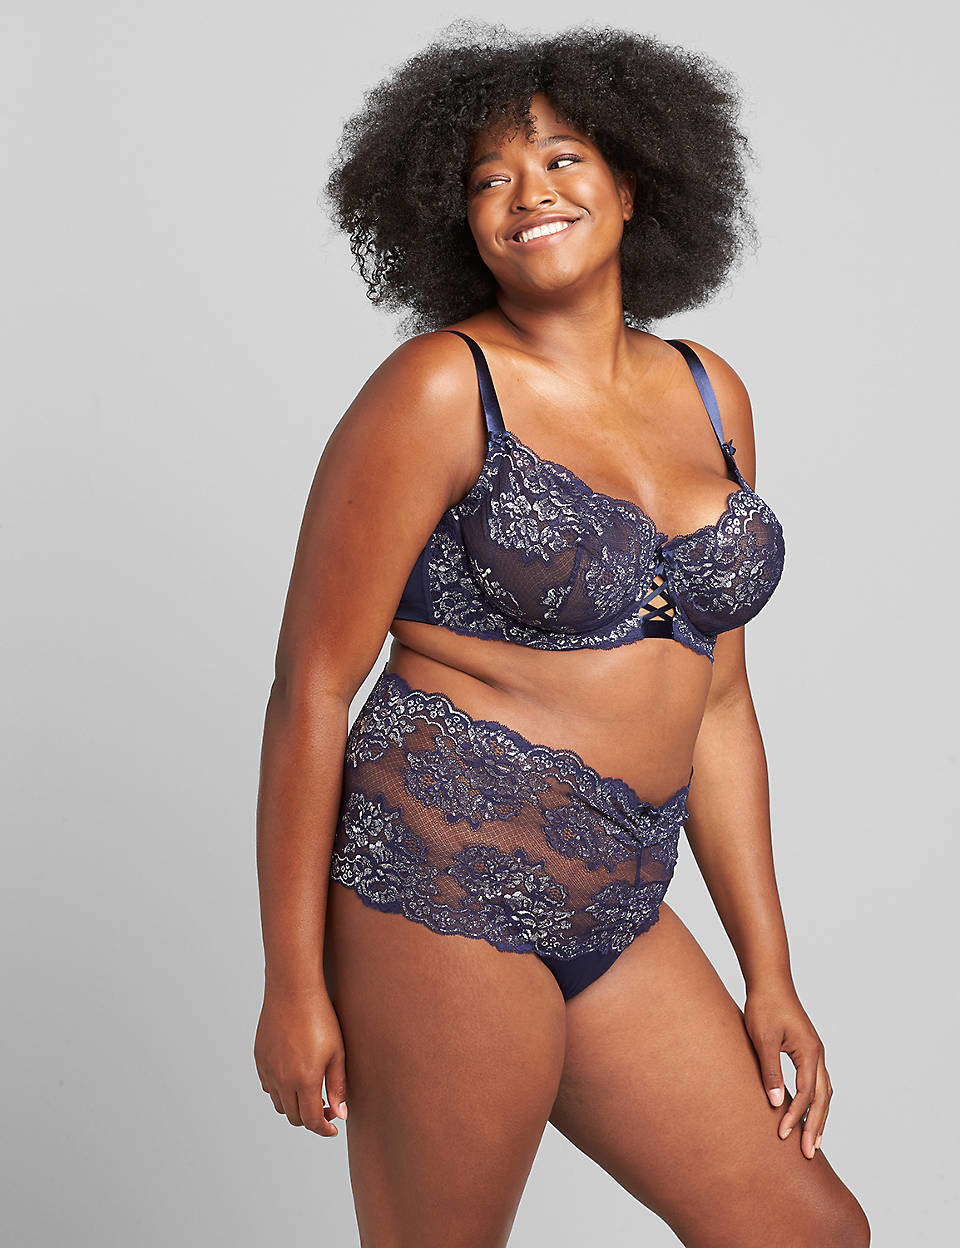 a model in a navy blue matching bra and underwear set with silver lace accents